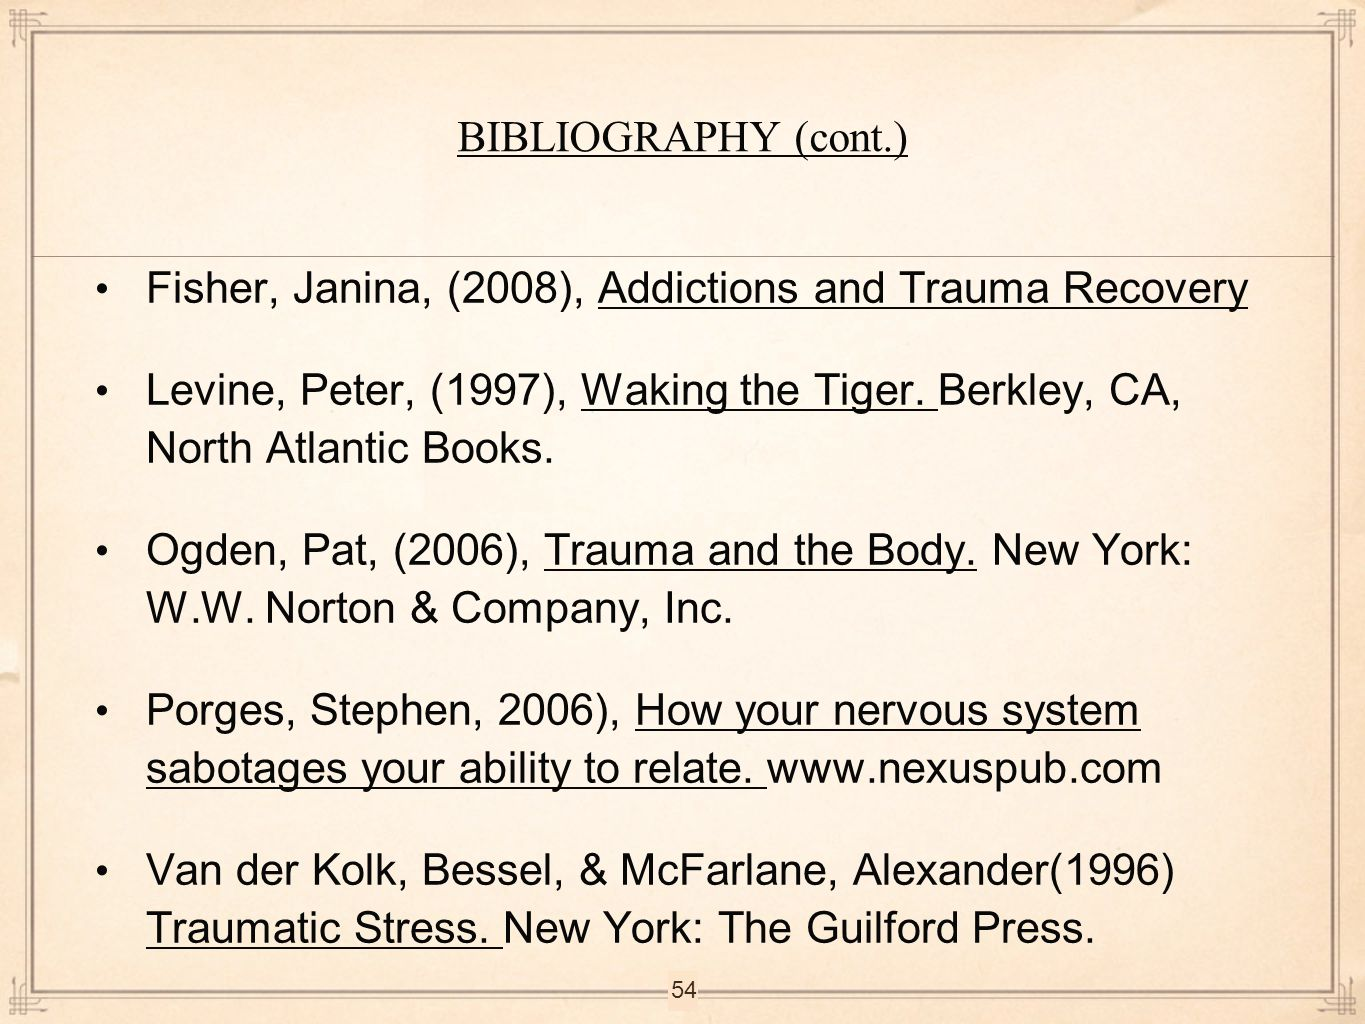 BIBLIOGRAPHY (cont.) Fisher, Janina, (2008), Addictions and Trauma Recovery.